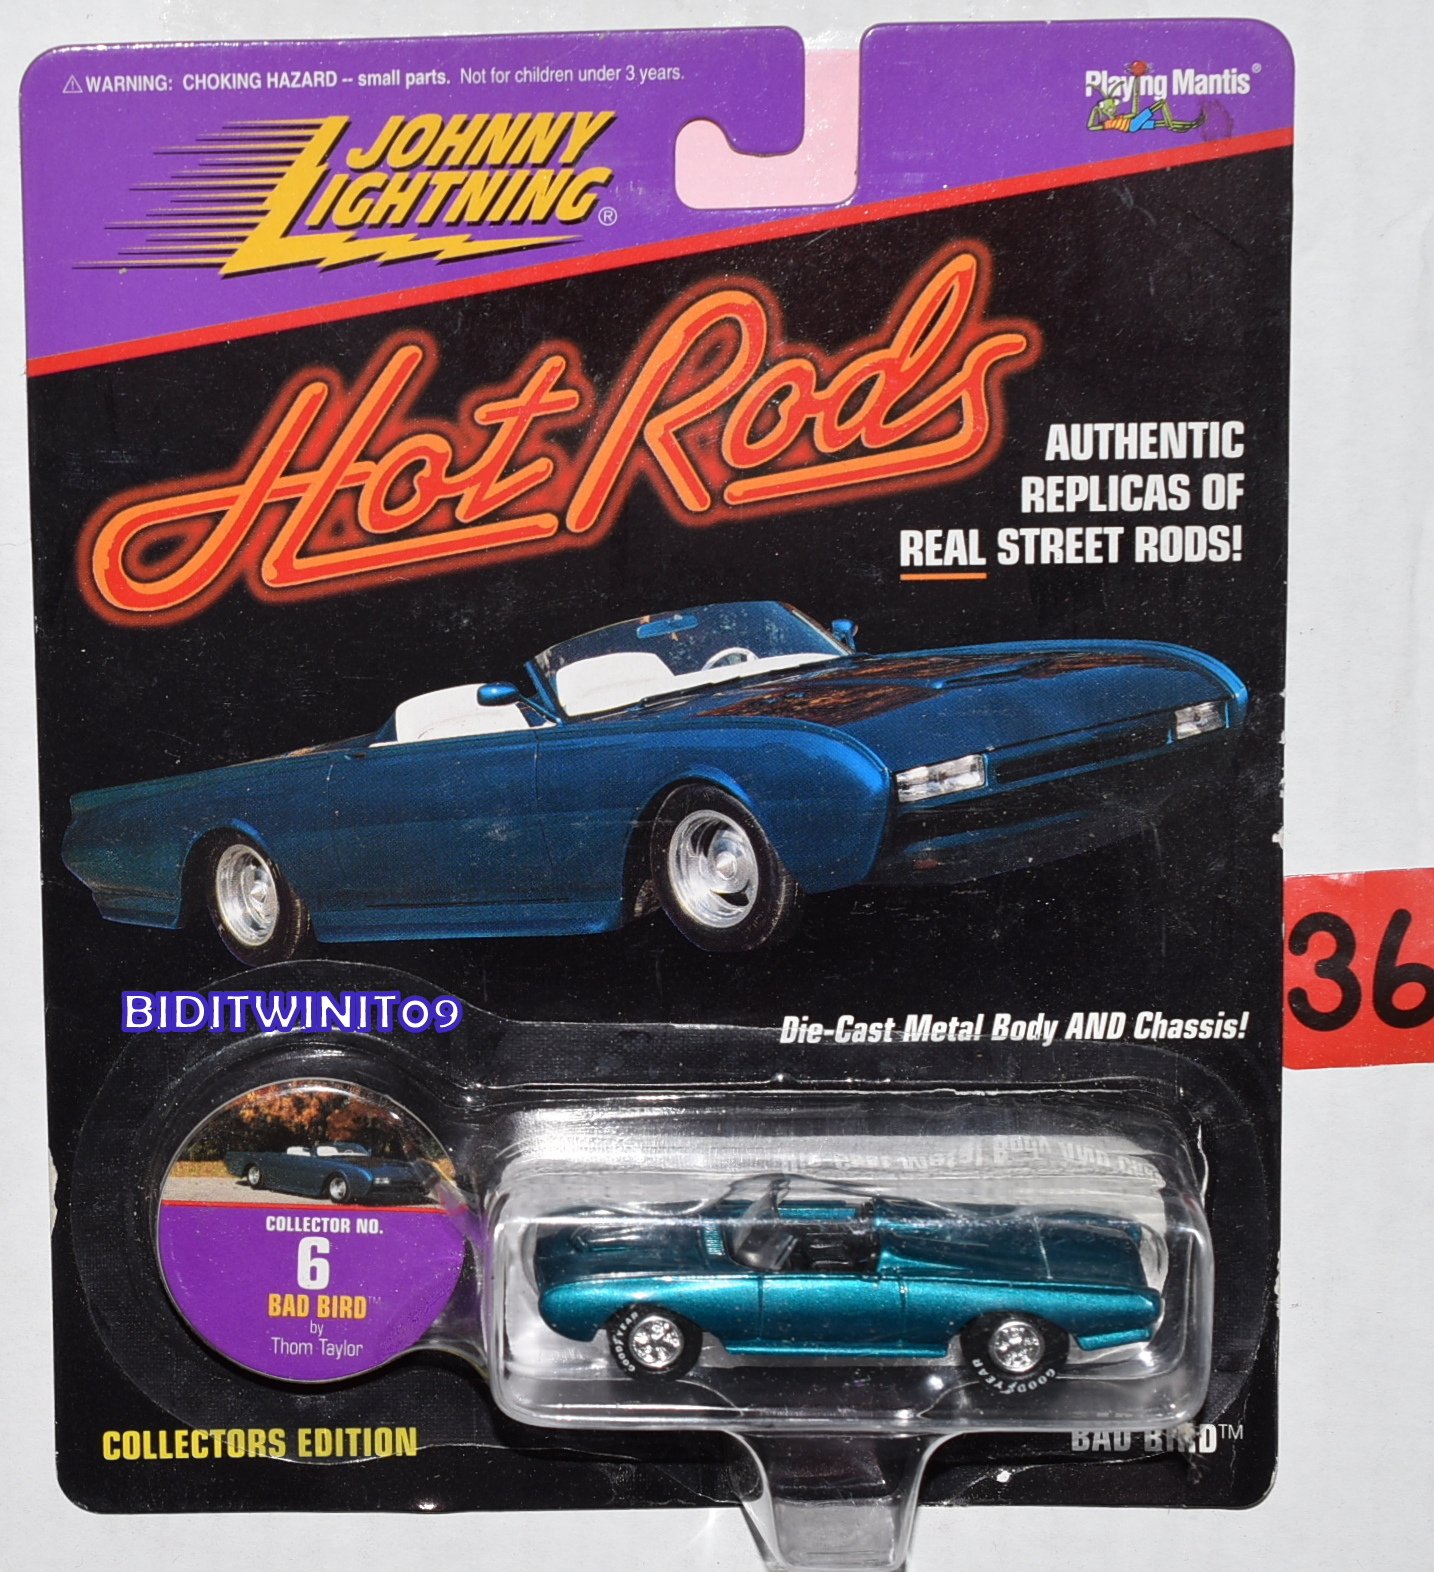 JOHNNY LIGHTNING HOT RODS #6 BAD BIRD BY THOM TAYLOR